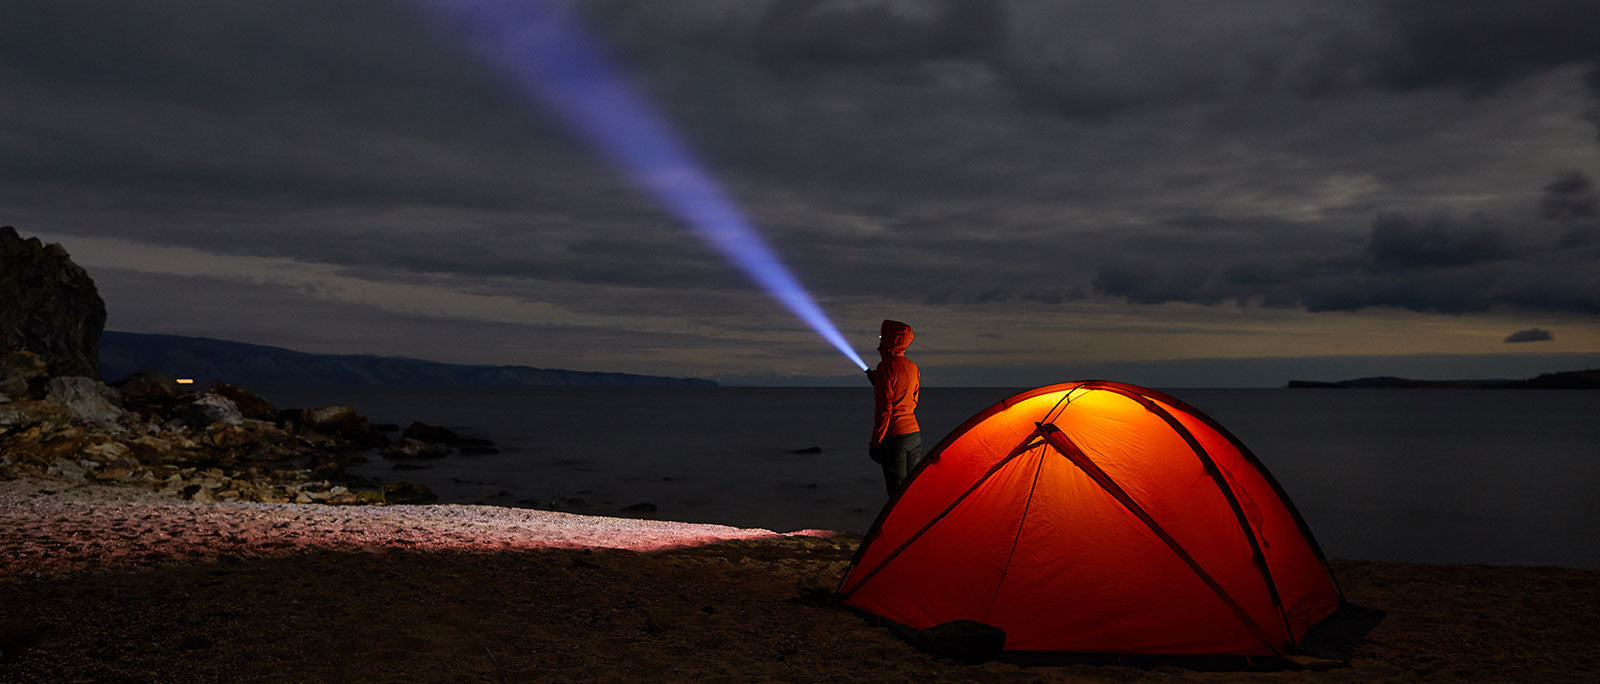 Wild Camping: What to do if you get moved on | Wildbounds